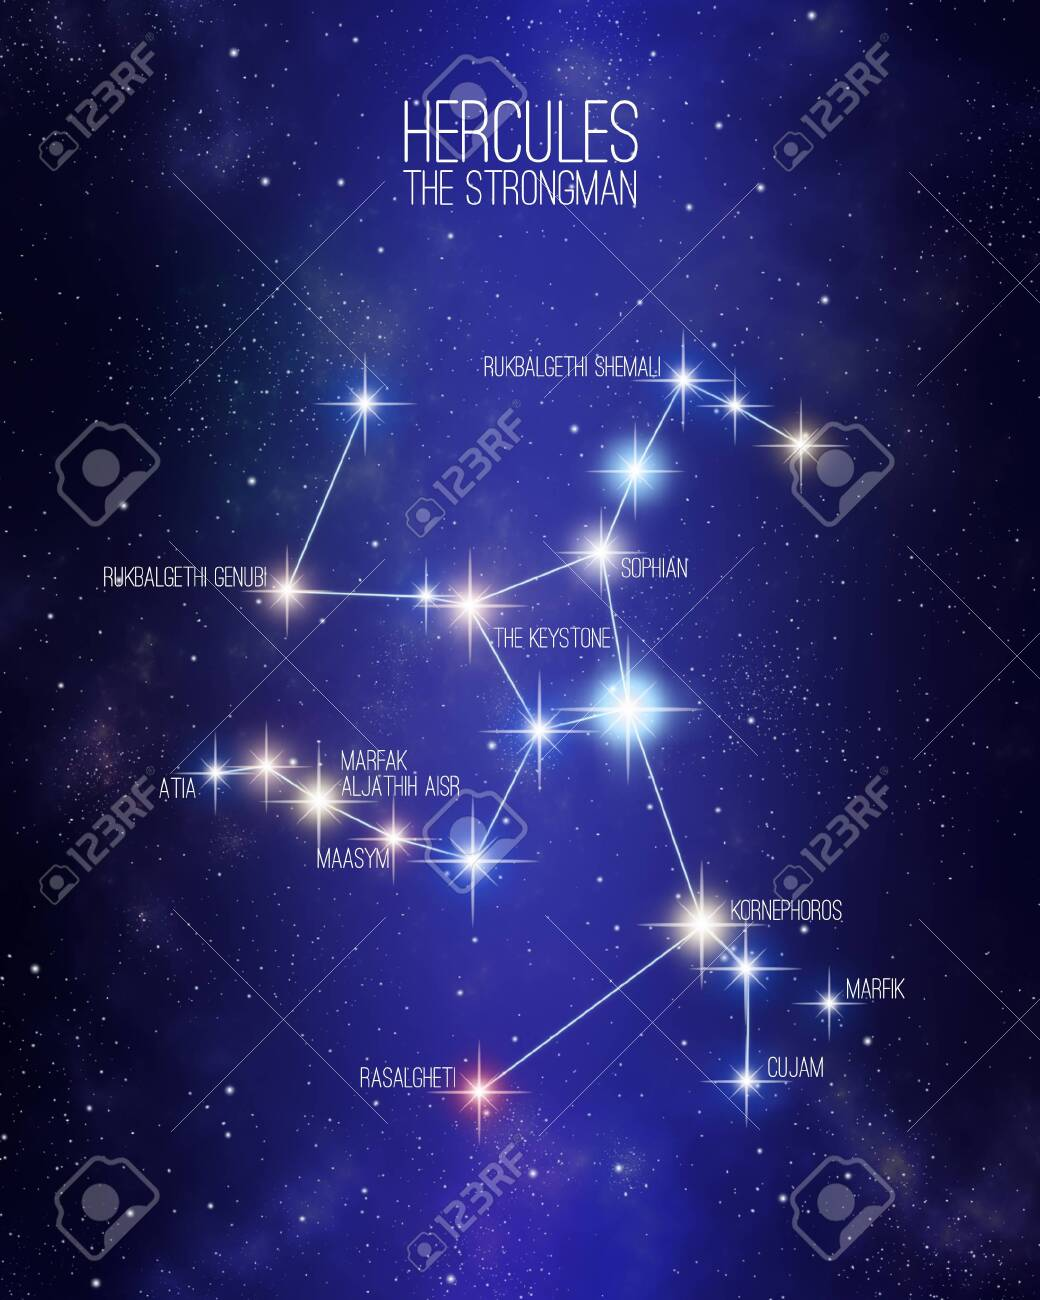 Hercules The Strongman Constellation On A Starry Space Background 1040x1300